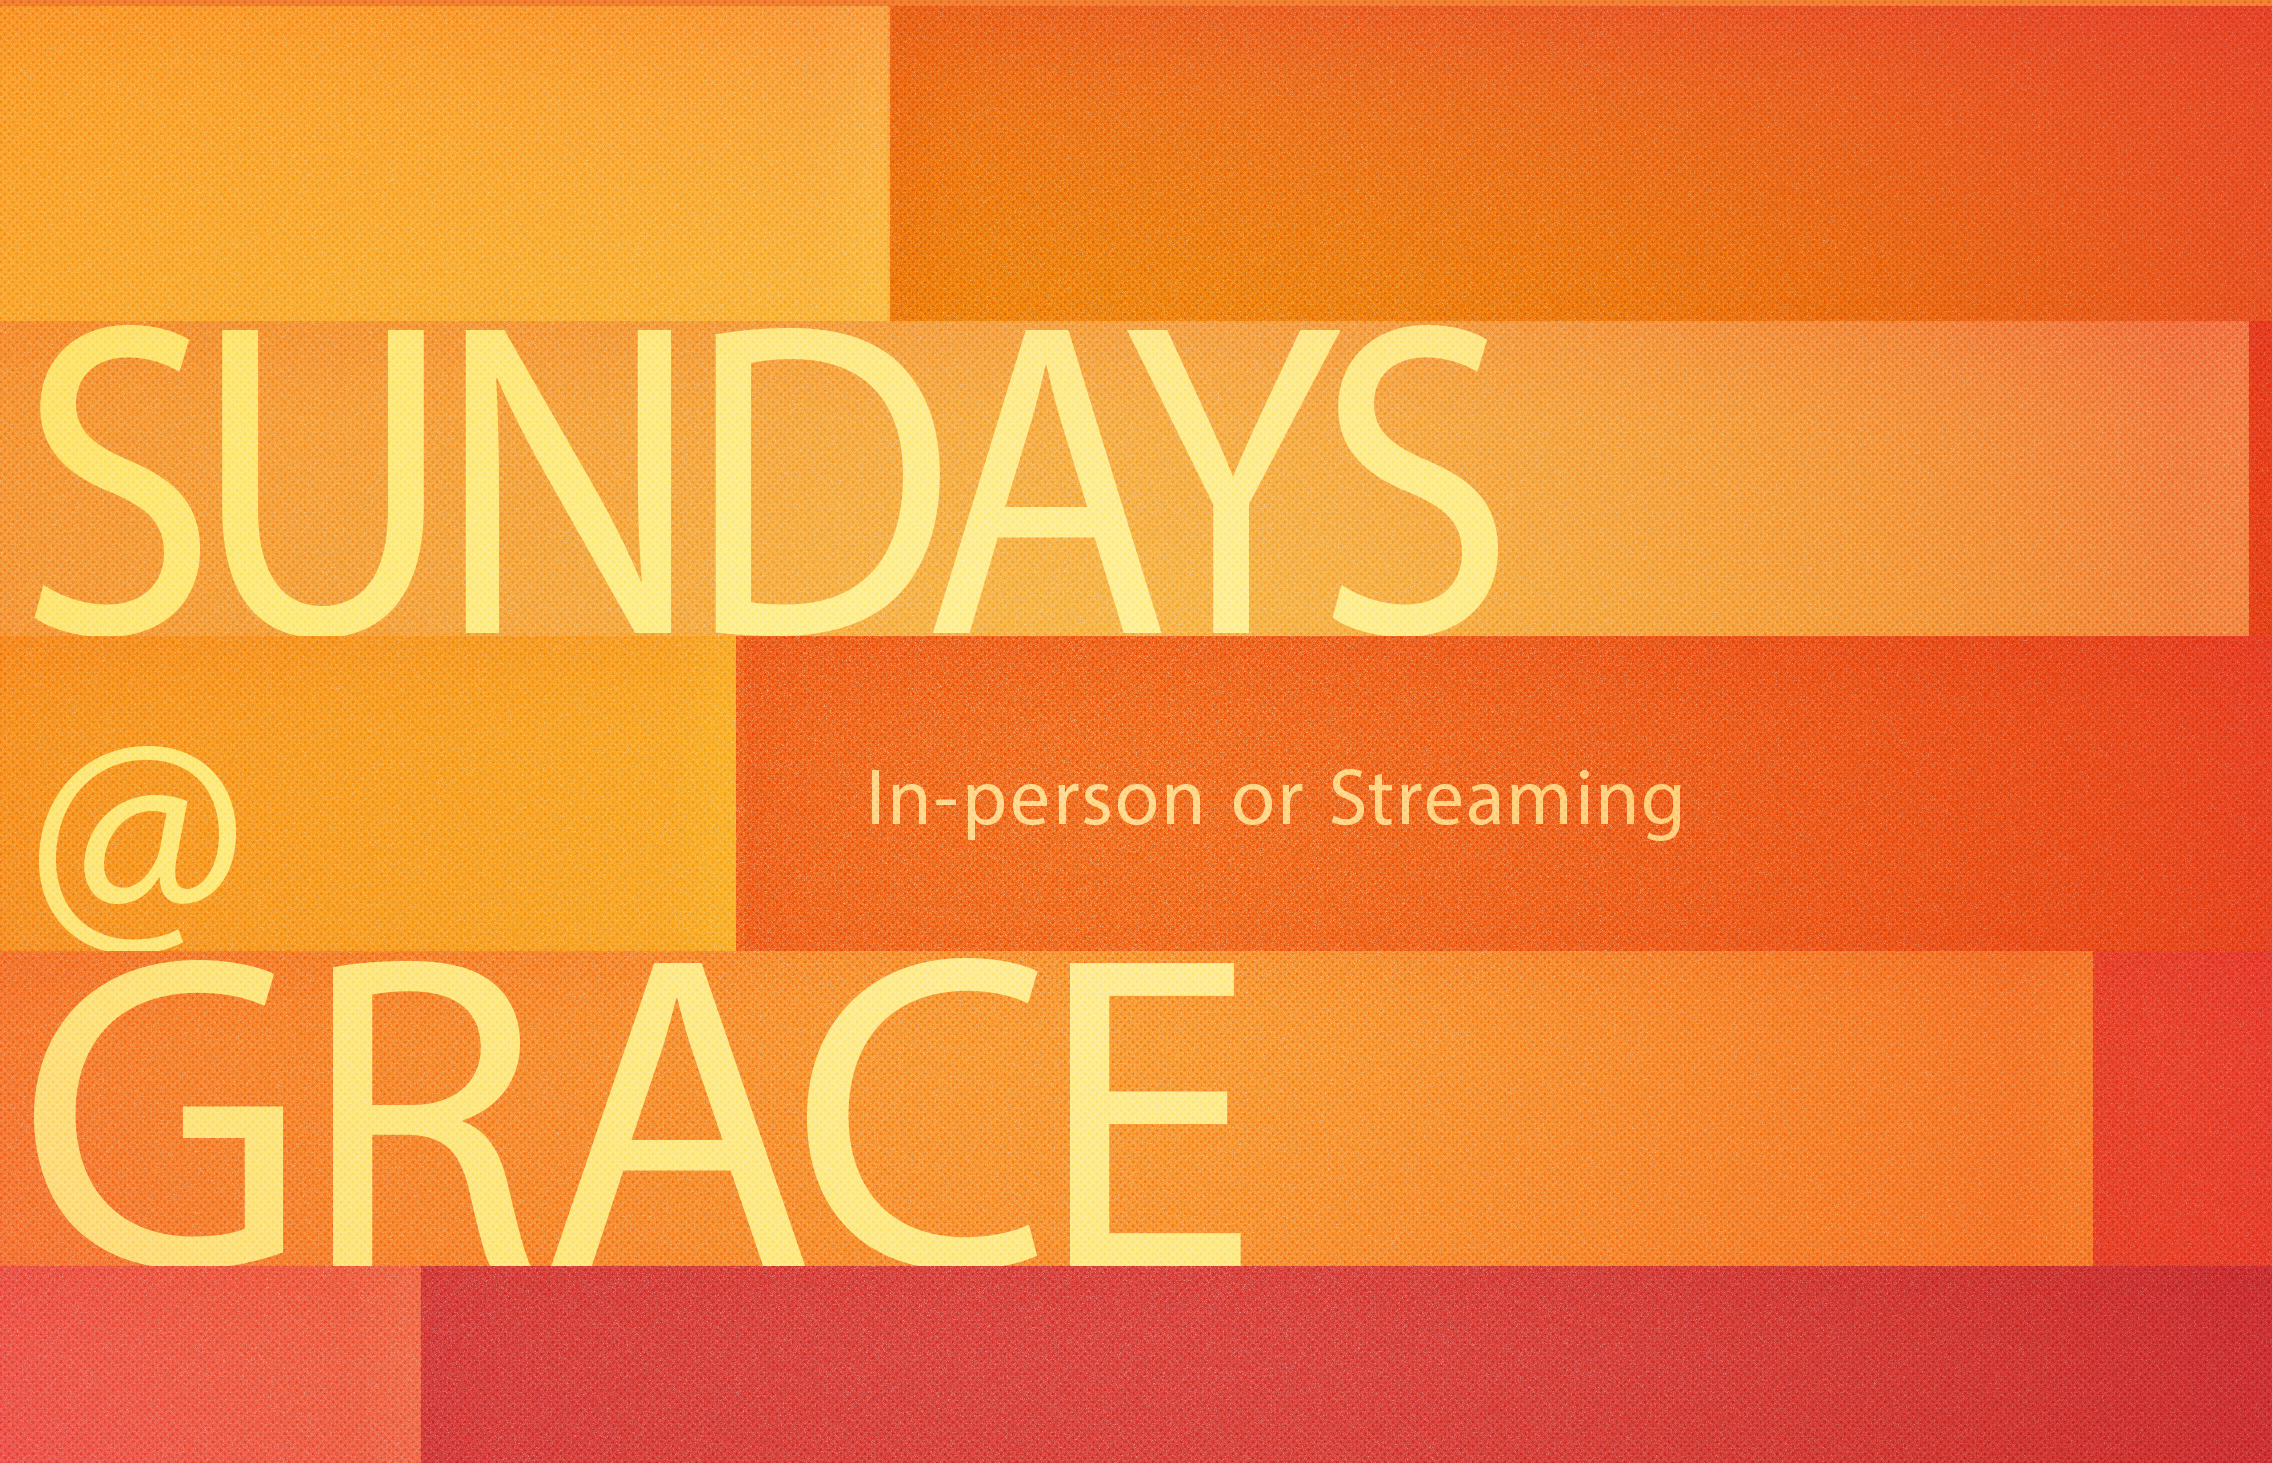 Sundays at Grace